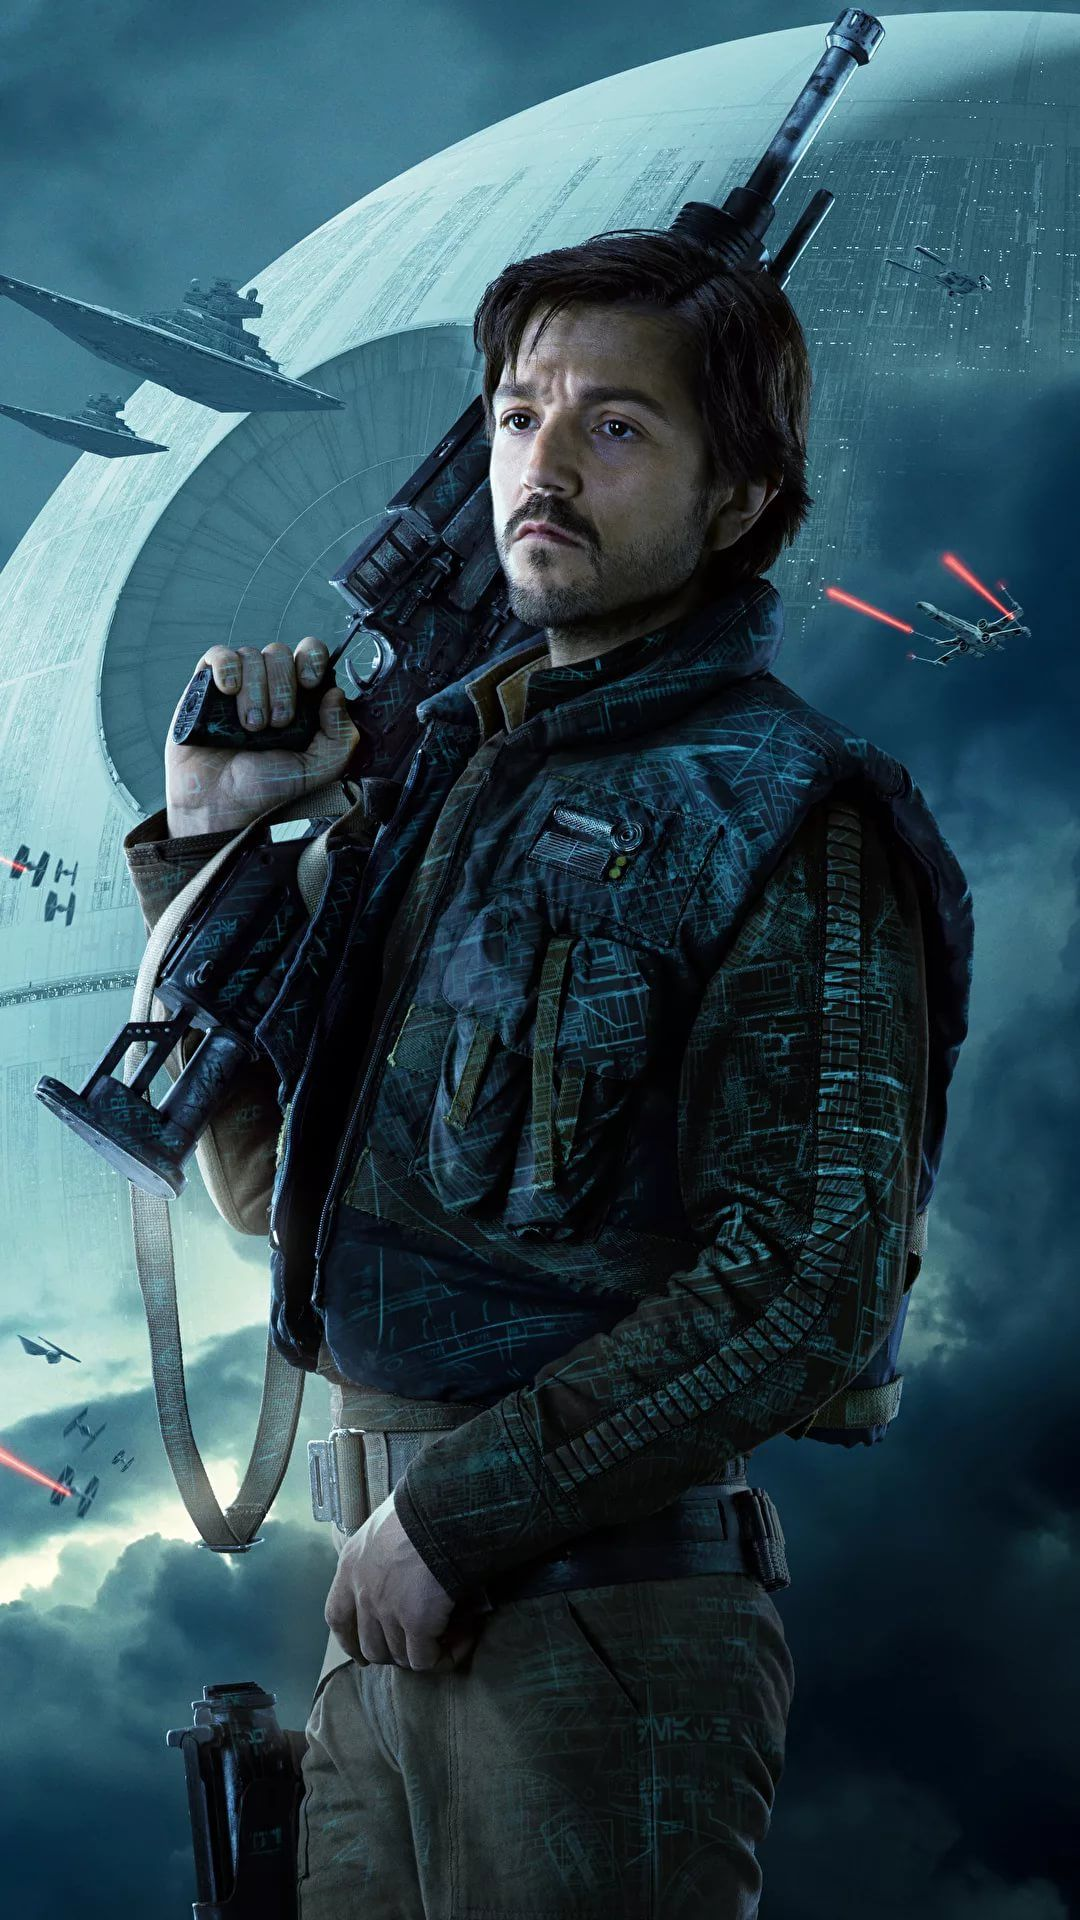 Rogue One wallpaper for iPhone